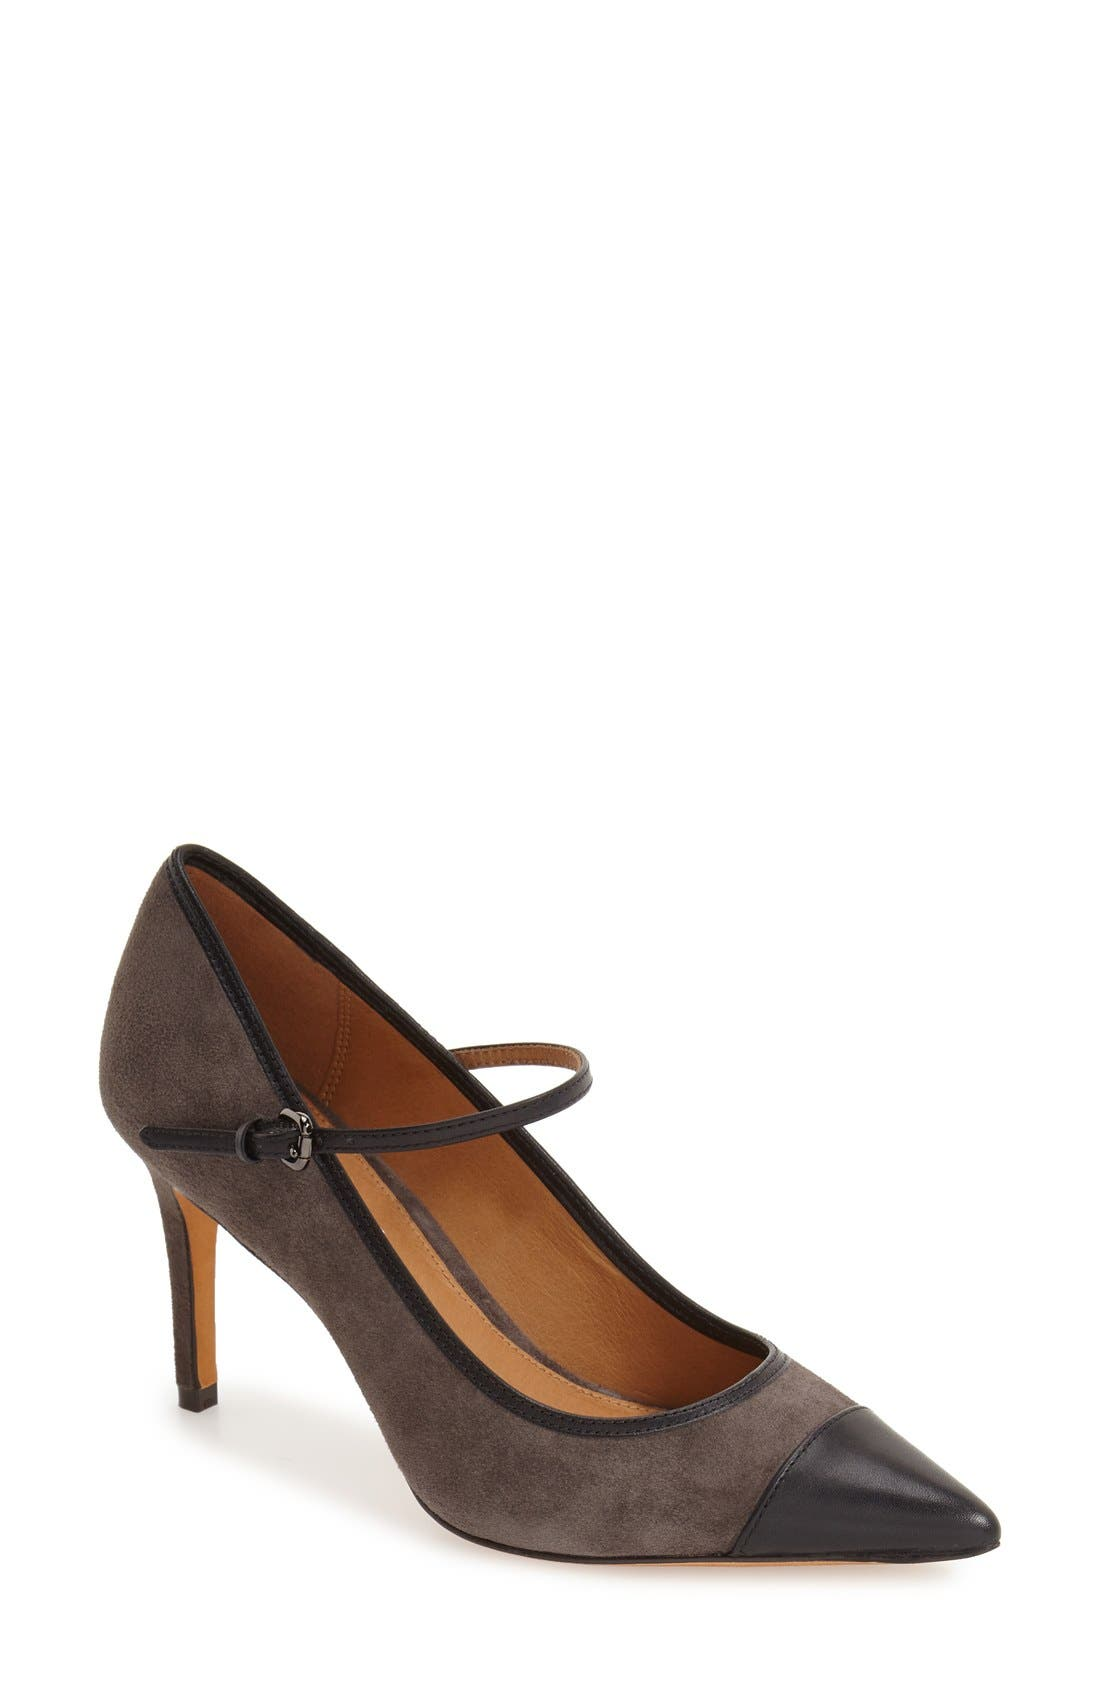 'Smith' Mary Jane Pump,                             Main thumbnail 1, color,                             Mink/ Black Suede